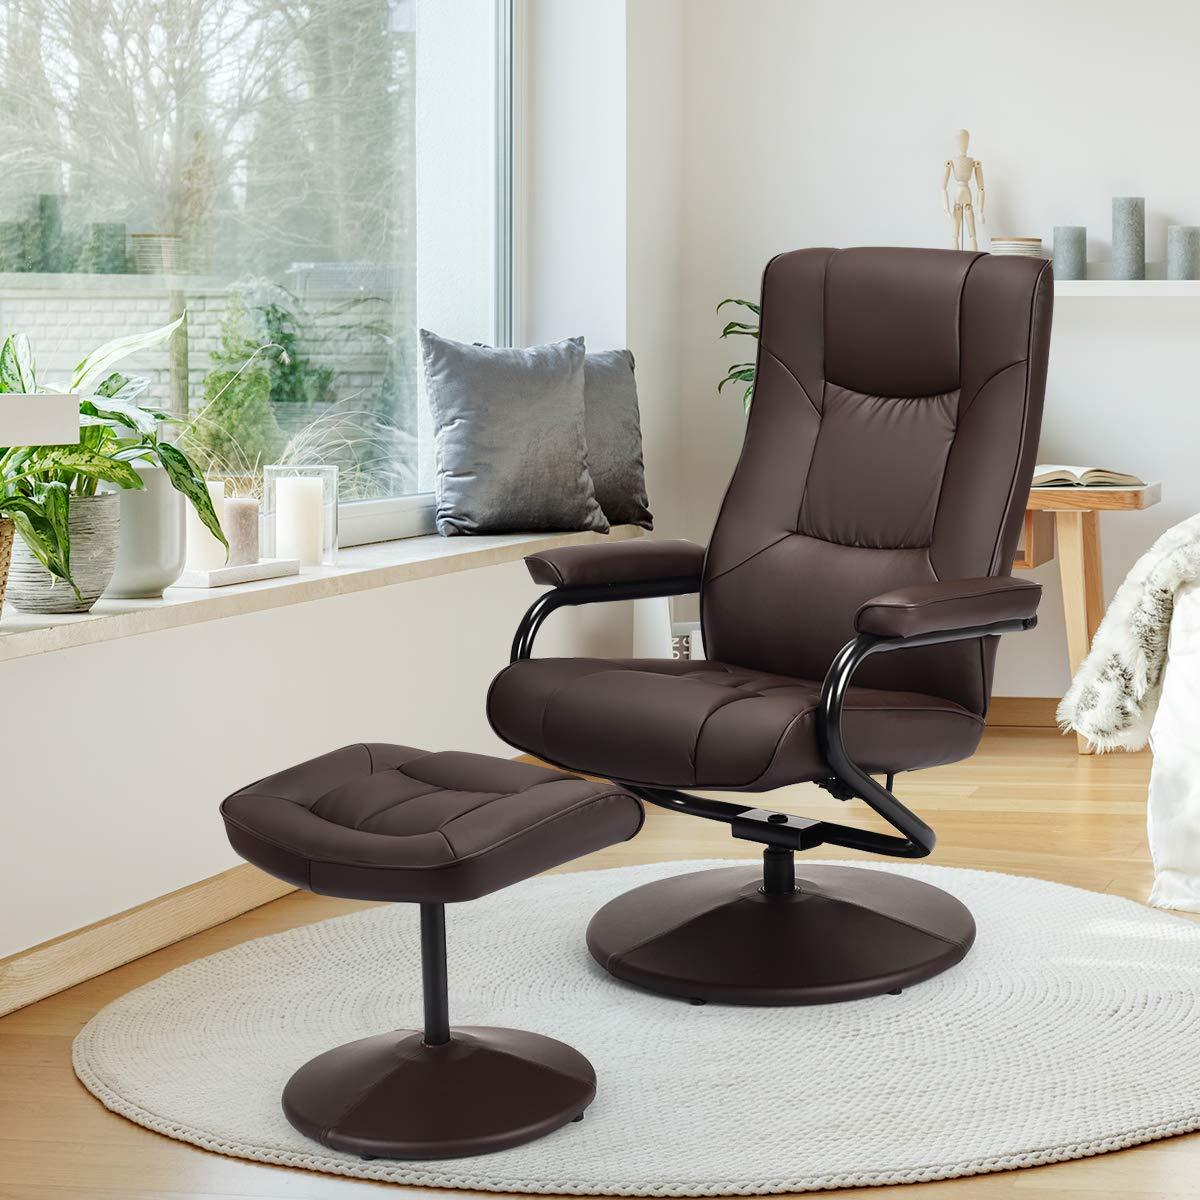 Giantex Swivel Recliner Chair w/Ottoman, 360 Degree Swivel PU Leather Chair w/Footrest, Lounge Armchair w/Overstuffed Padded Seat and Leather Wrapped Base, for Home Office Living Room(Brown) by Giantex